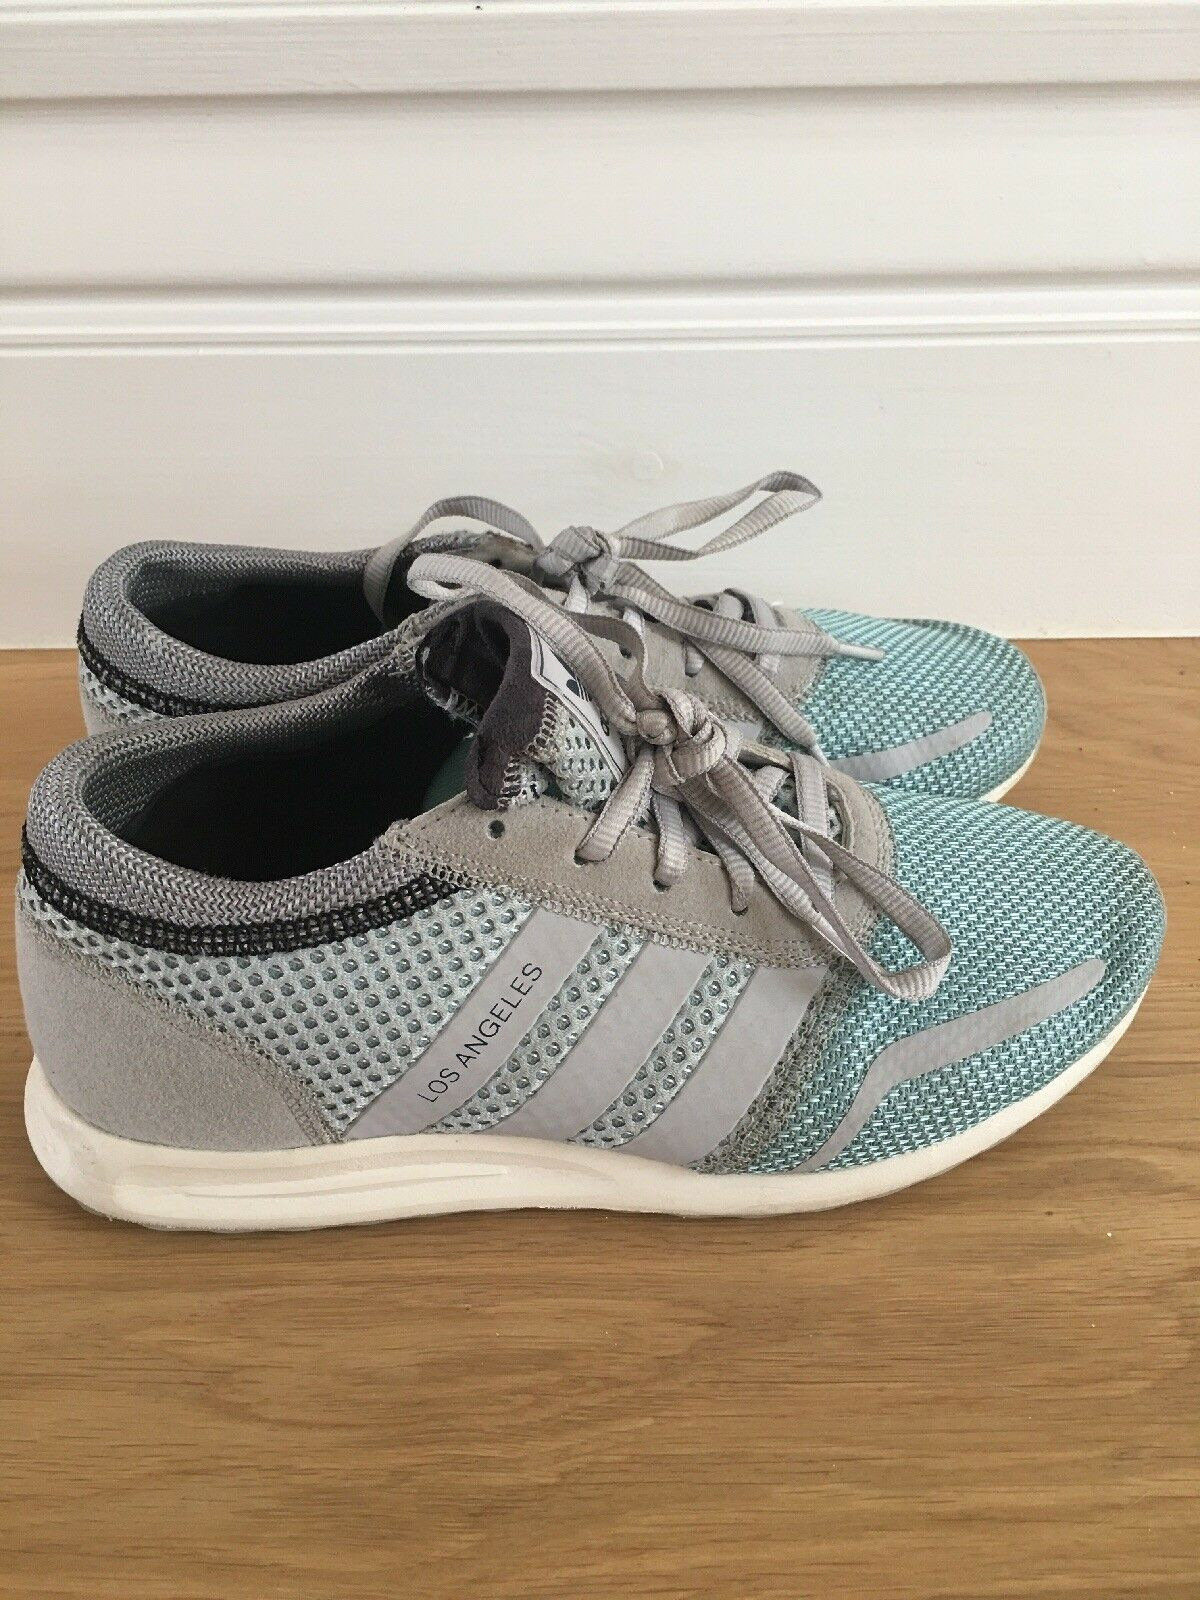 Adidas Los Angeles Trainers Grey and Blue UK size 6 Seasonal price cuts, discount benefits